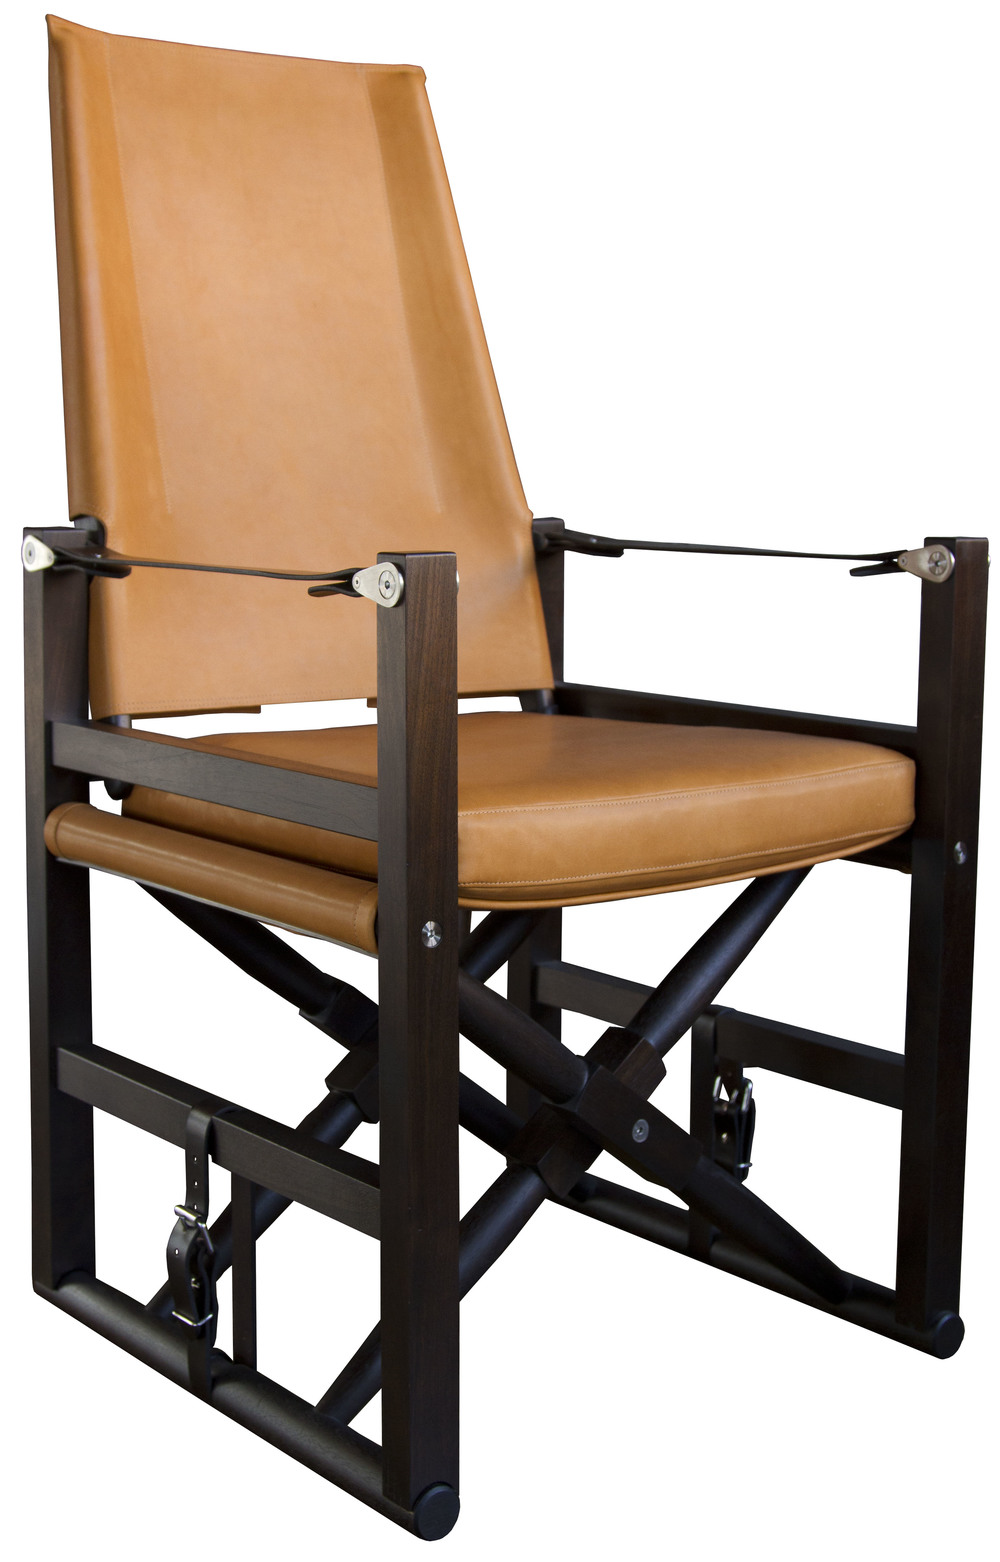 Large Cabourn Folding Chair  Macassar stained walnut with Valhalla: tan upholstery and dark chocolate English bridle leather strapping